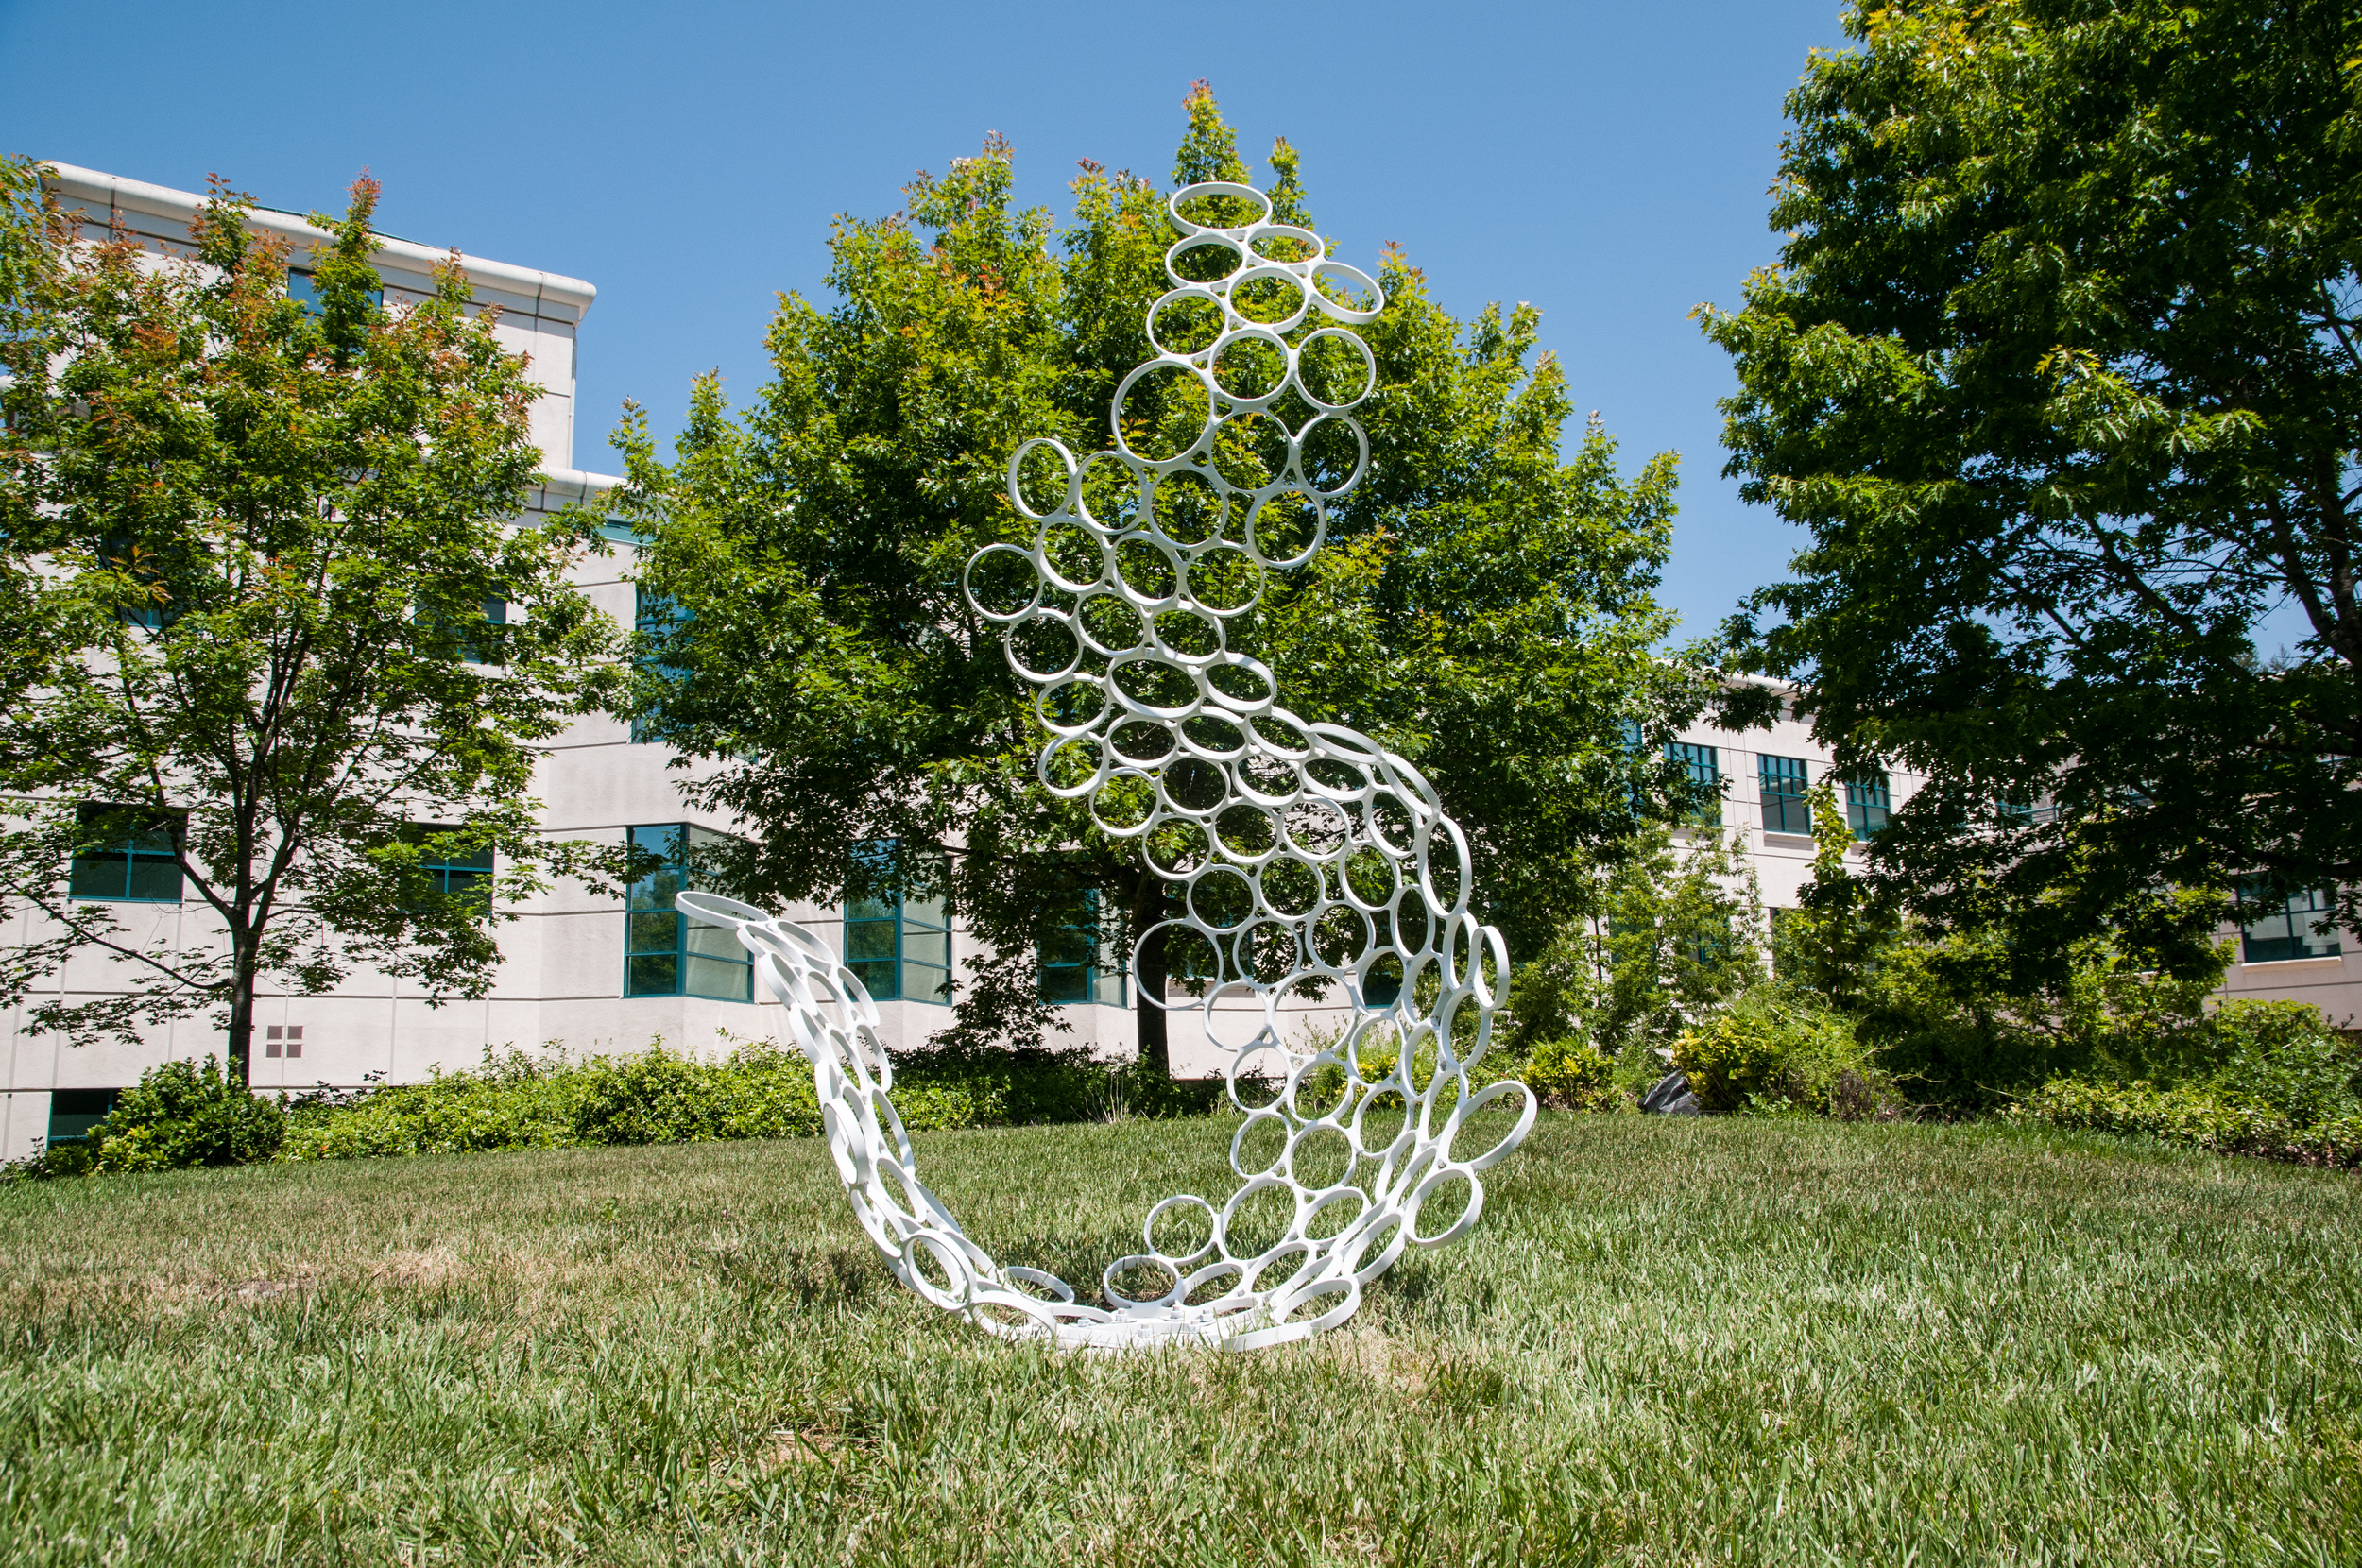 STAR // Gustavo Vasquez    Eleven Sonoma State University students have been working throughout the semester as part of the Commencement Sculpture course to create art showcased throughout campus in days approaching commencement.